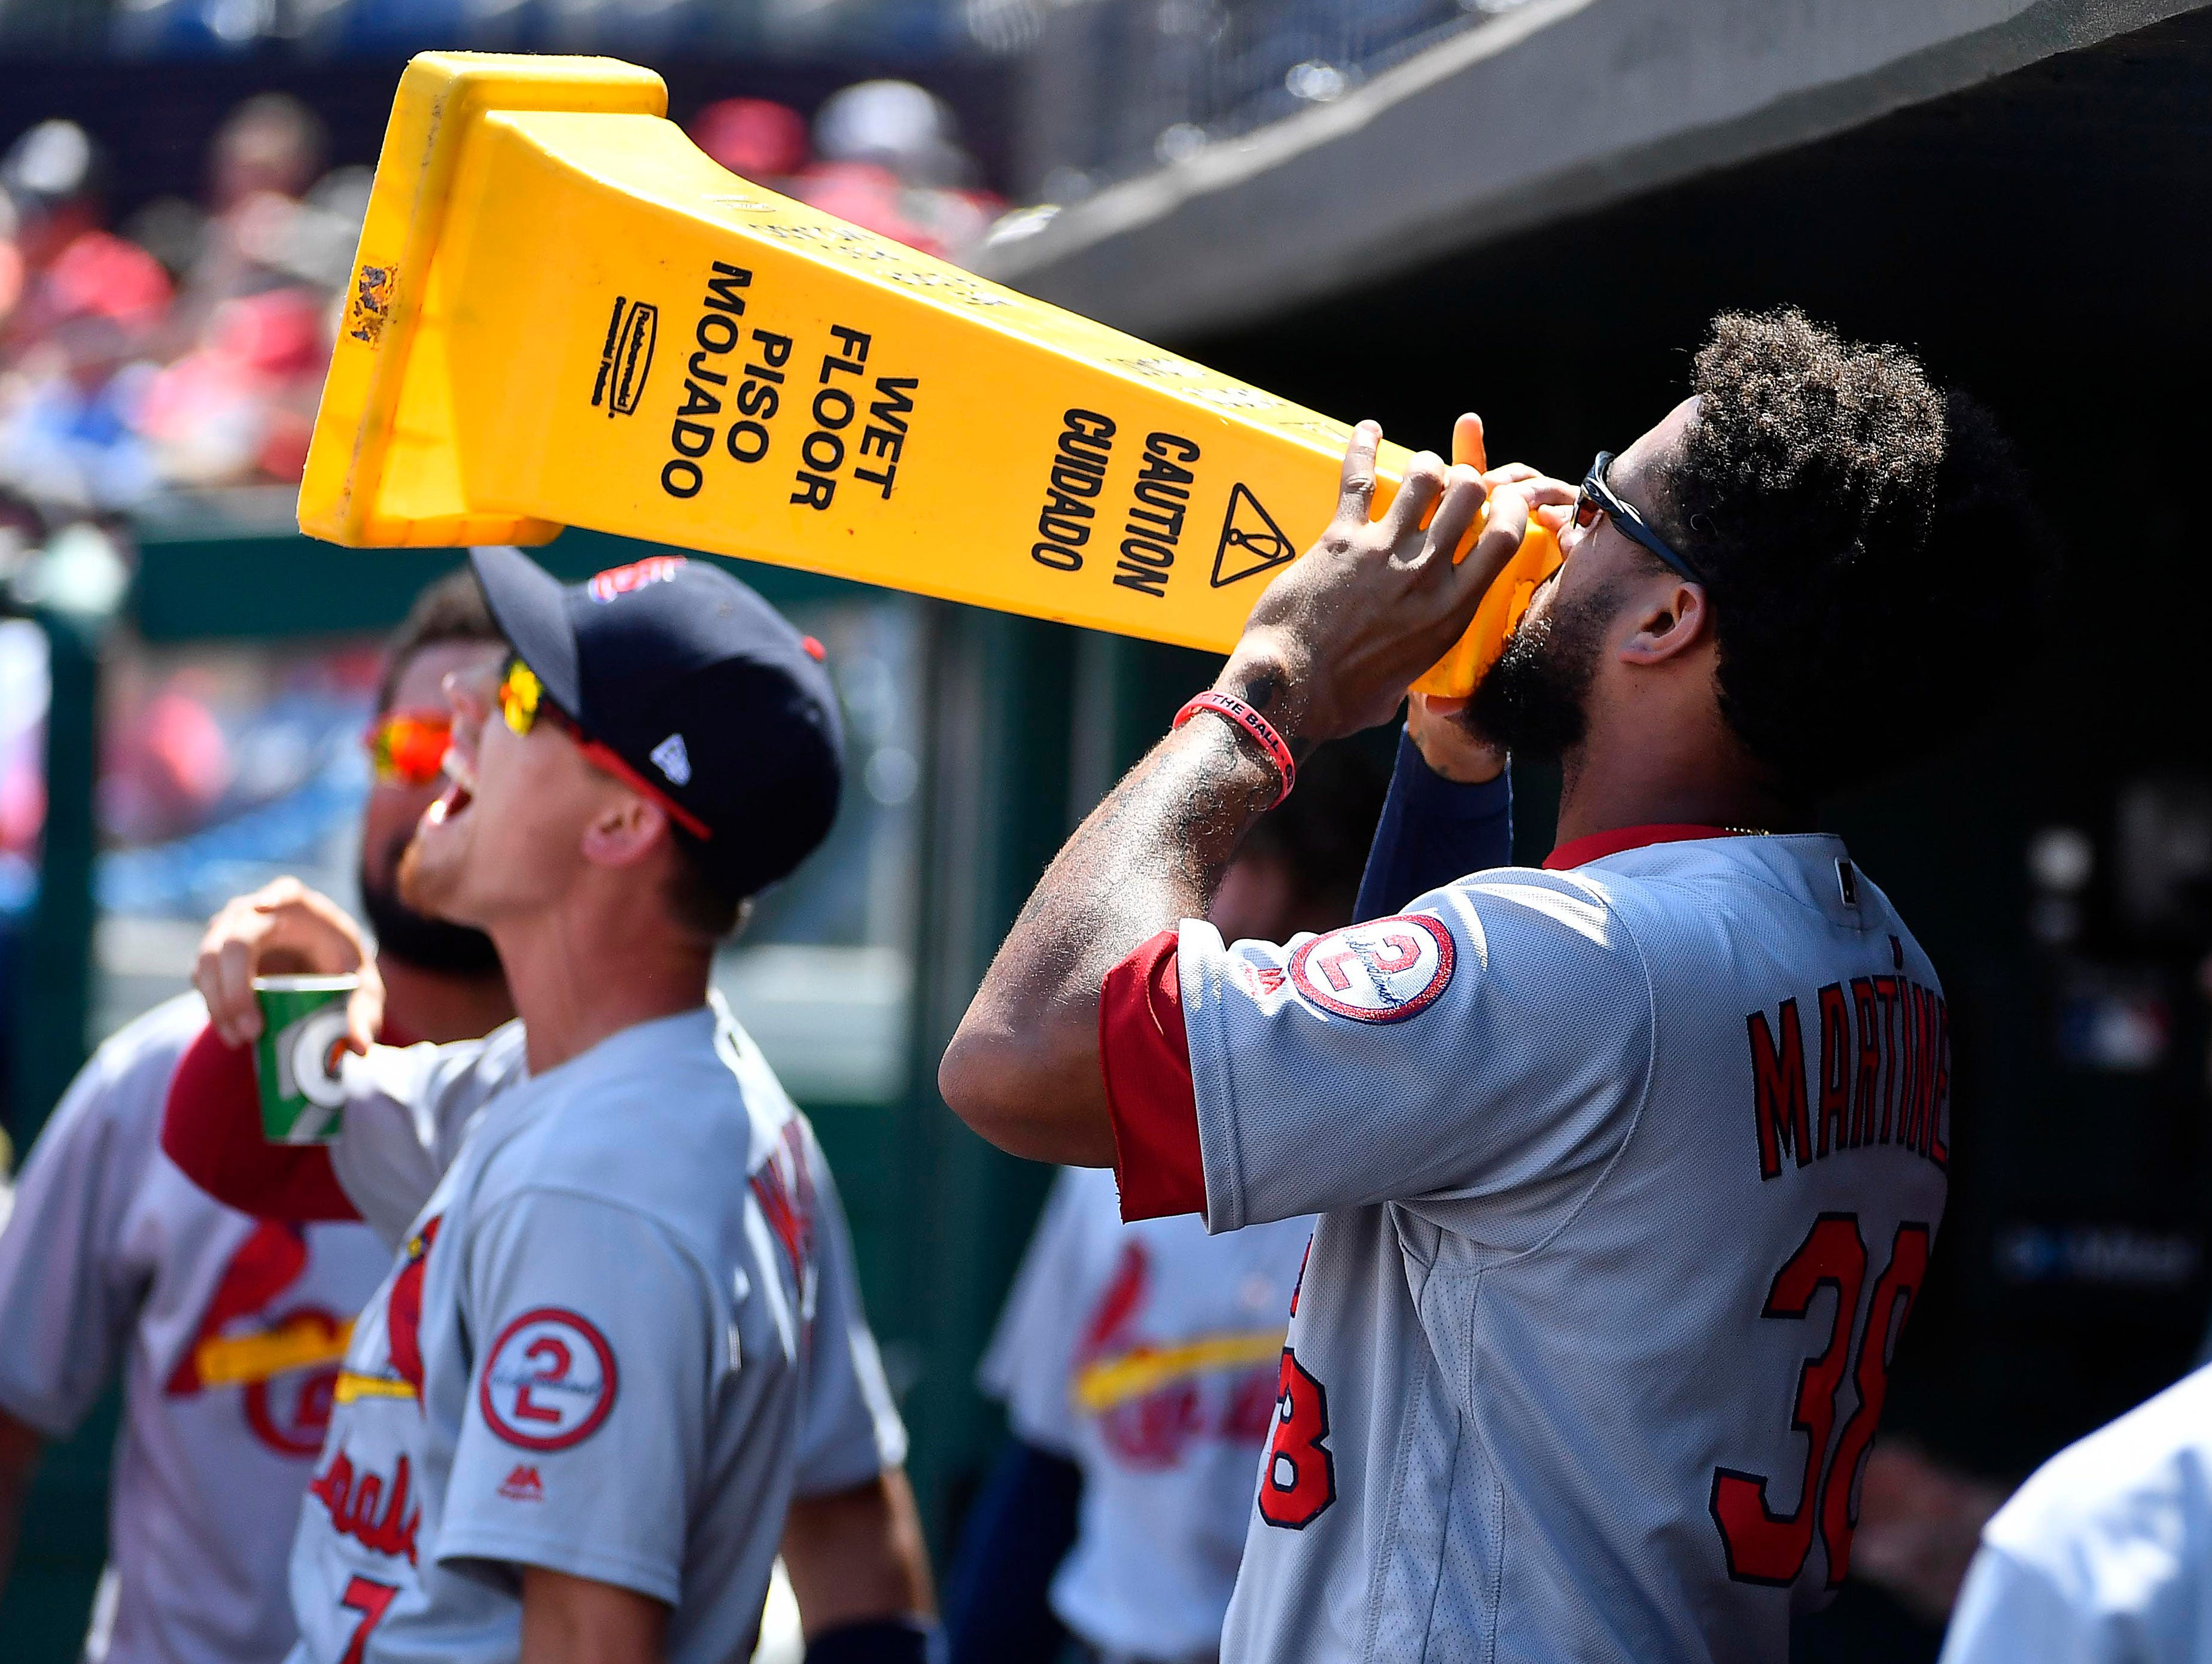 Sept. 3: St. Louis Cardinals first baseman Jose Martinez yells from the dugout against the Washington Nationals during the first inning at Nationals Park.